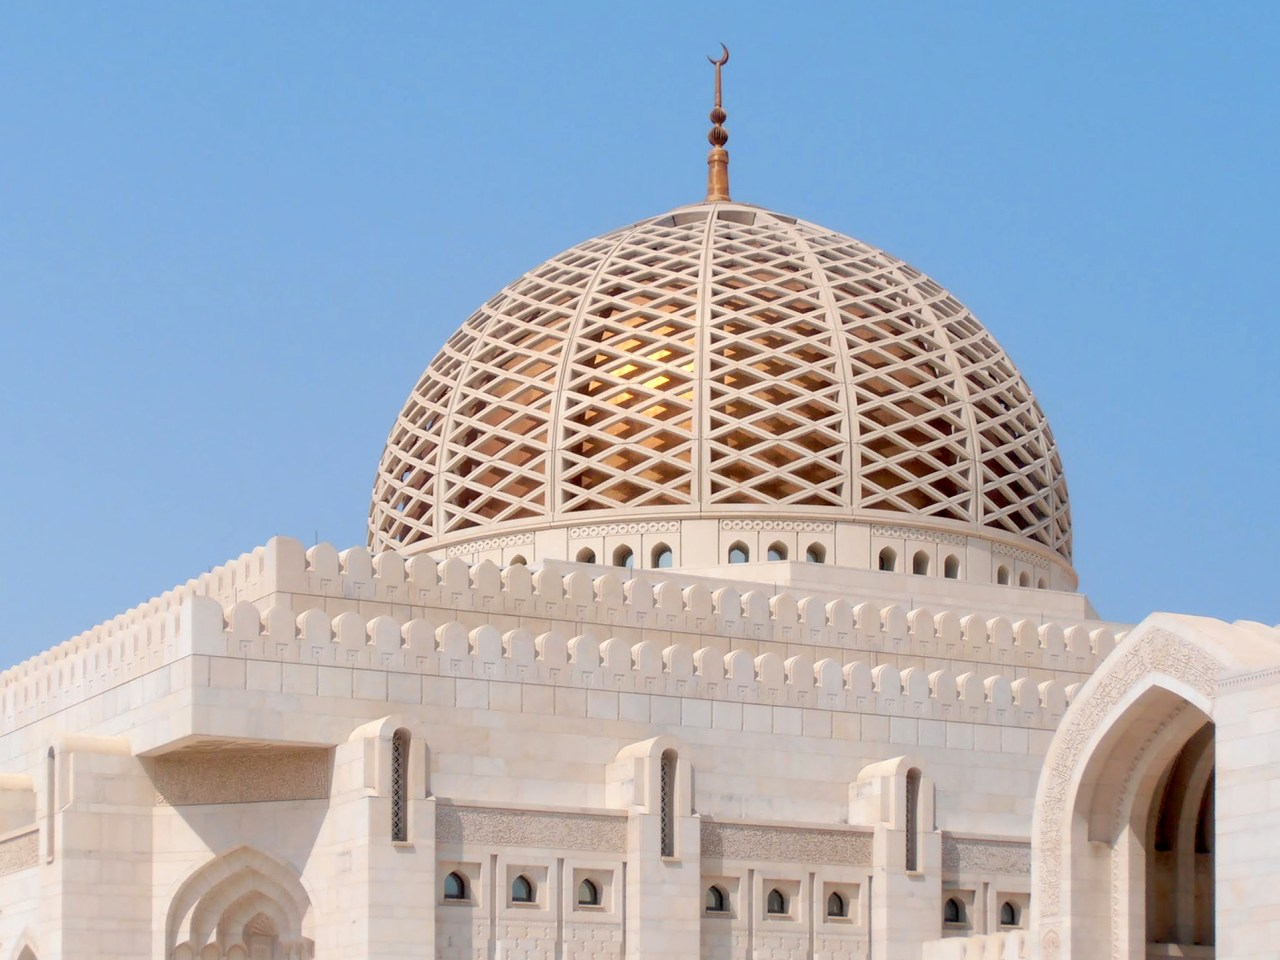 The Sultan Qaboos Grand Mosque. (Photo by Linda Pappas Funsch)